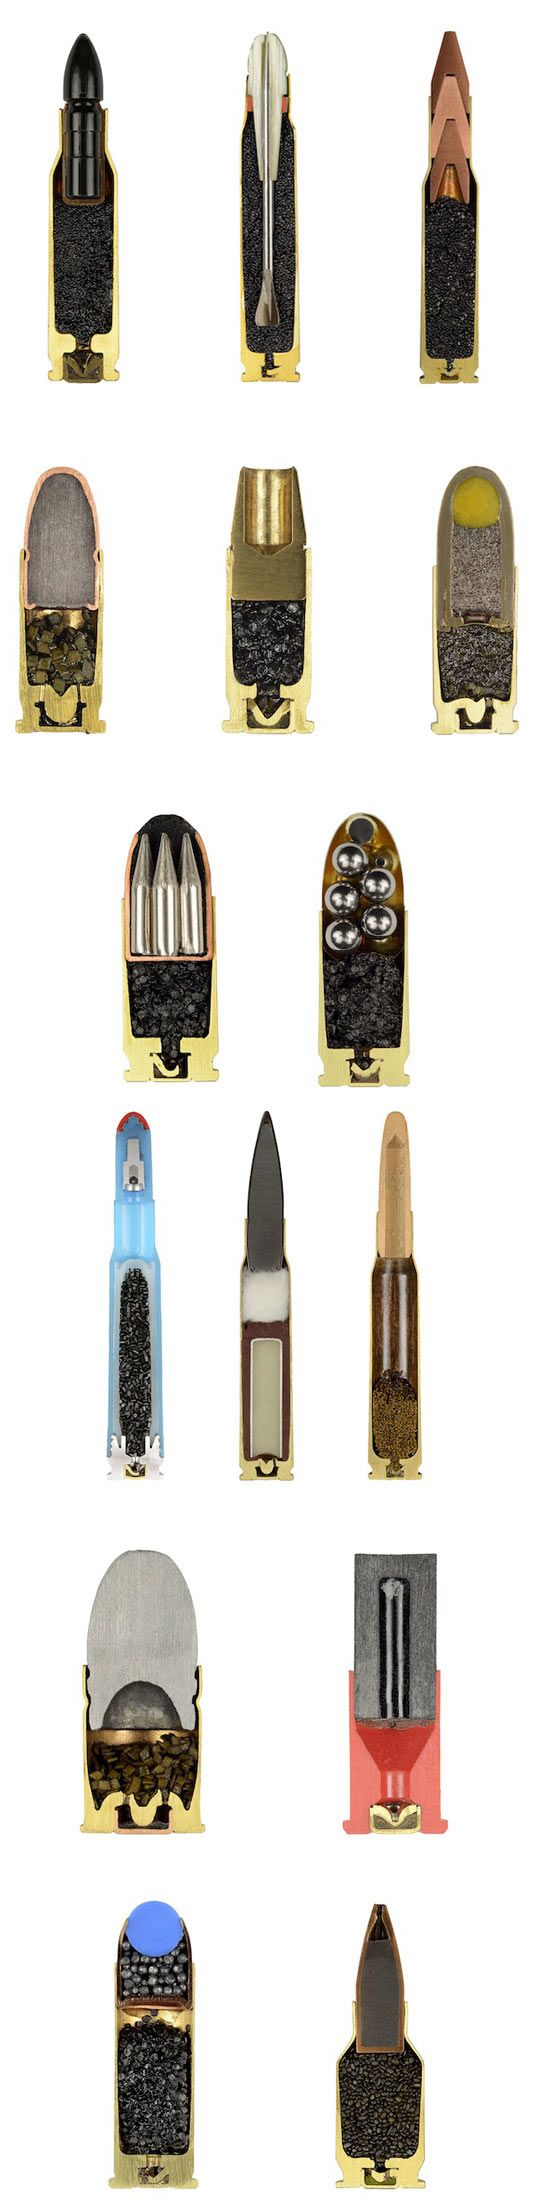 Cross-view of some common bullet types, to demonstrate the different projectiles used to kill, maim or cripple one's enemy.